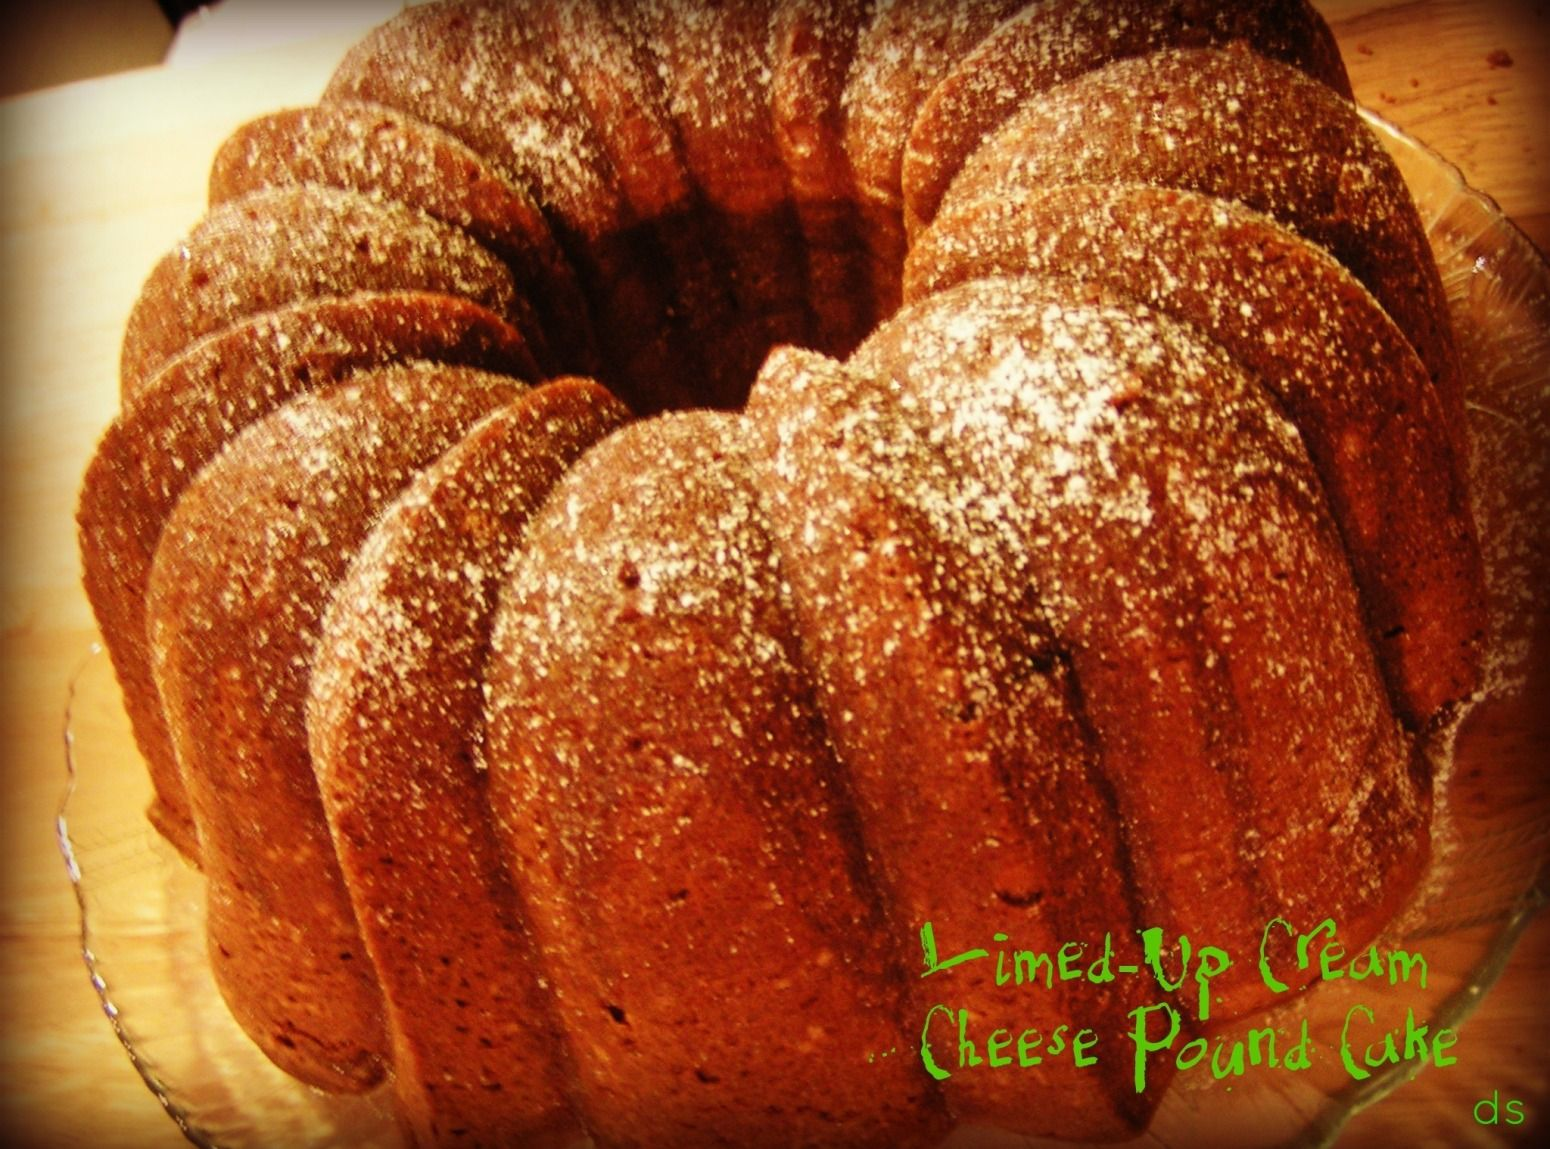 Limed Up Cream Cheese Pound Cake Dee Dee S Recipe Recipes